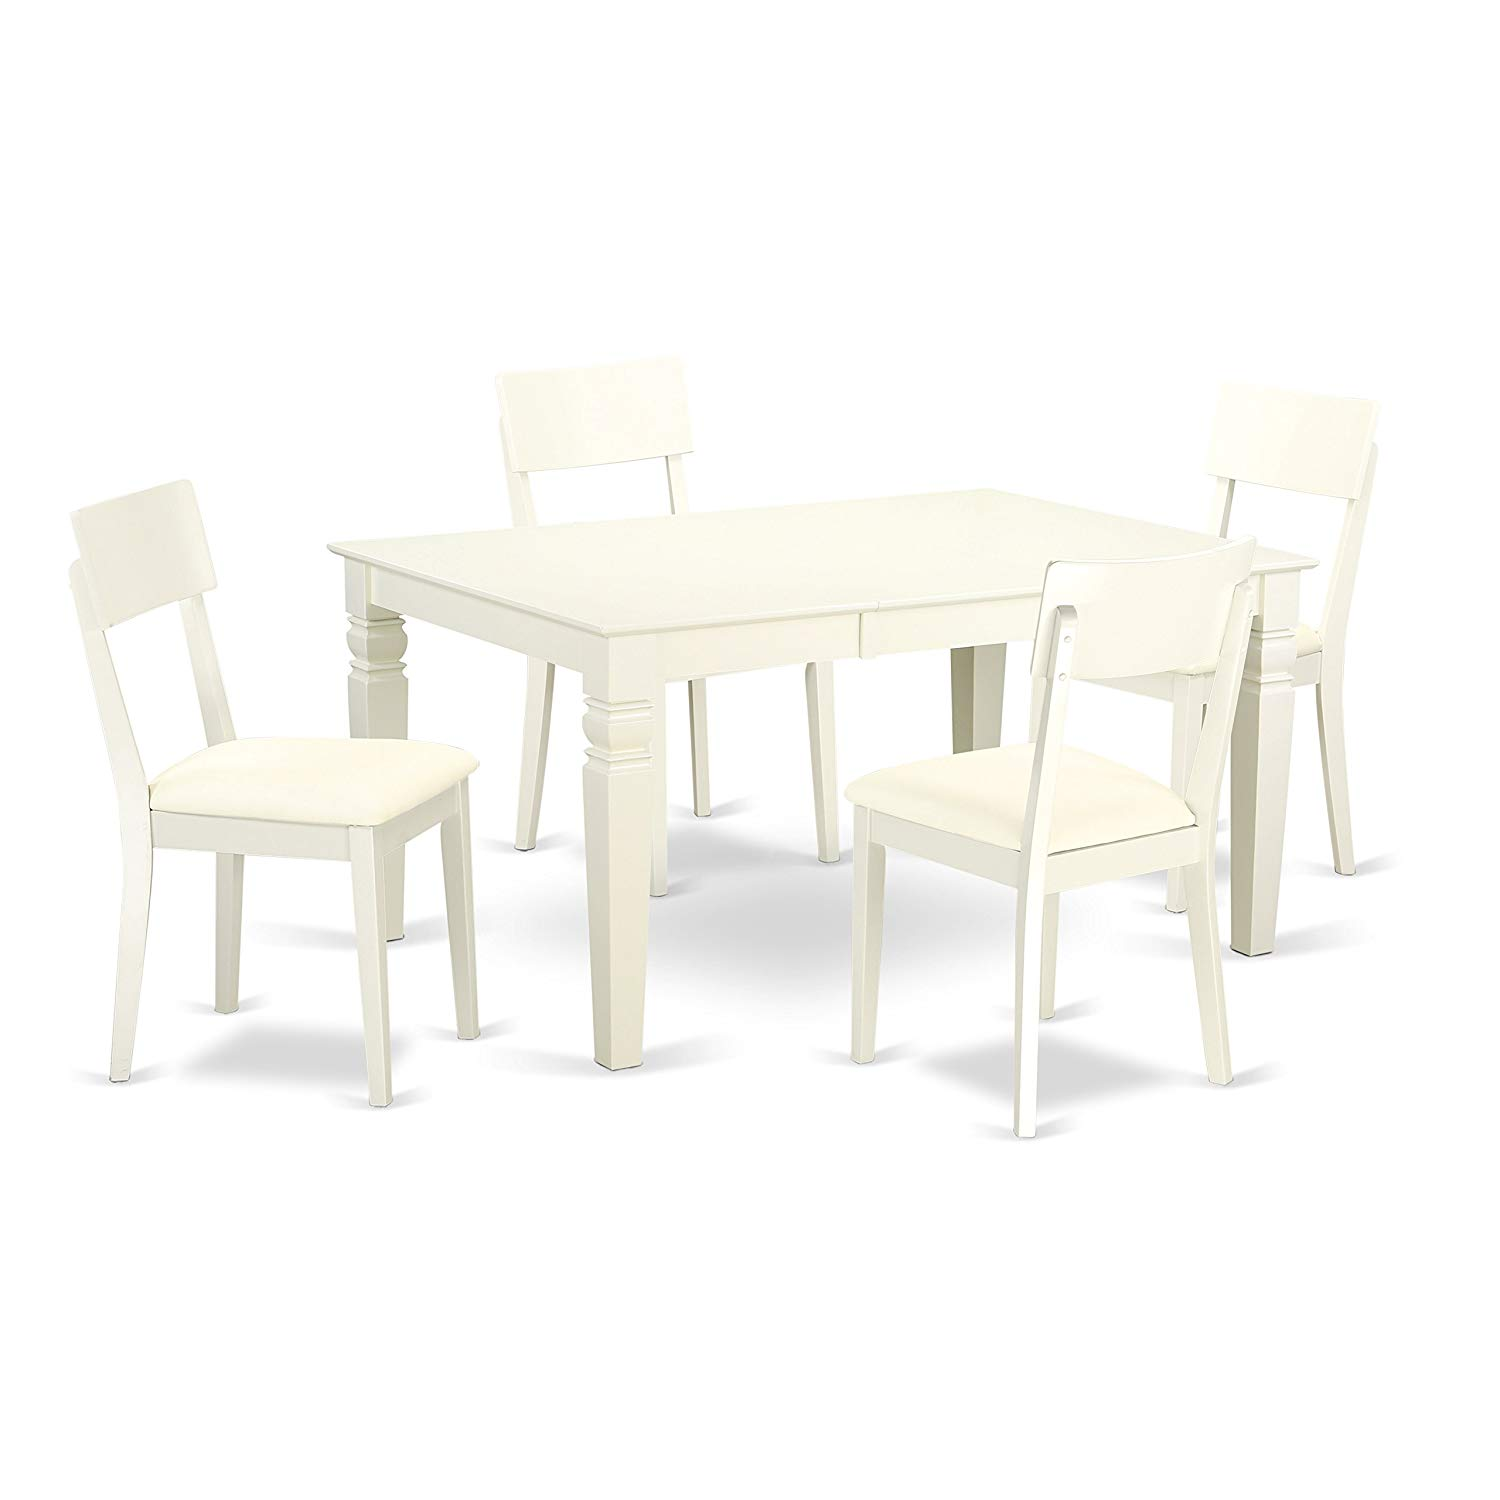 East West Furniture WEAD5-LWH-LC 5 Piece Dinette Set with One Weston Dining Room Table and 4 Solid Faux Leather Seat Chairs, Large, Linen White